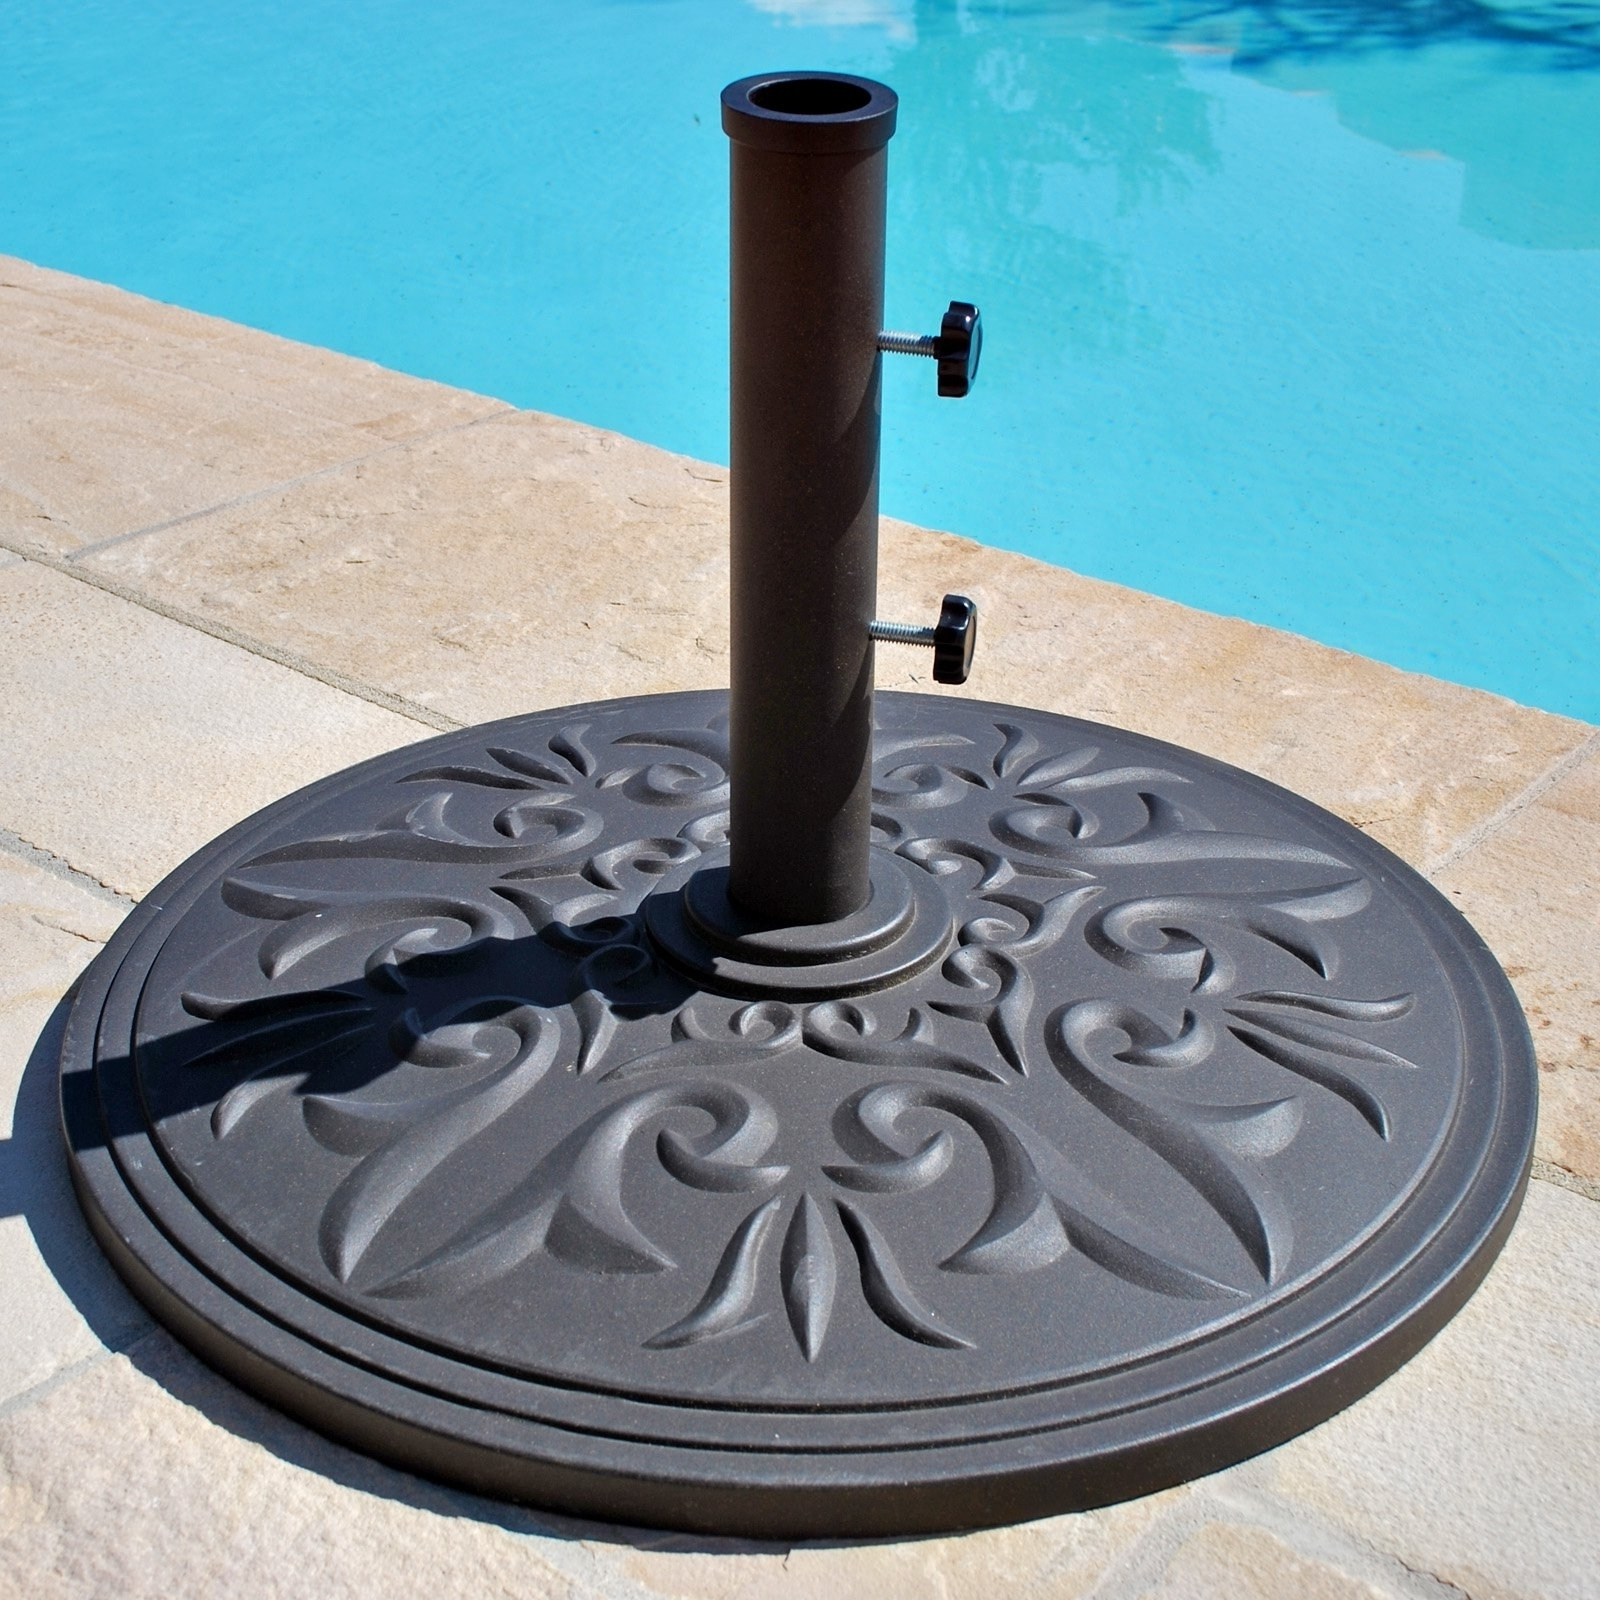 European Patio Umbrellas In 2019 Patio Umbrella Stand A Little More Decorative — The Home Redesign (View 7 of 20)